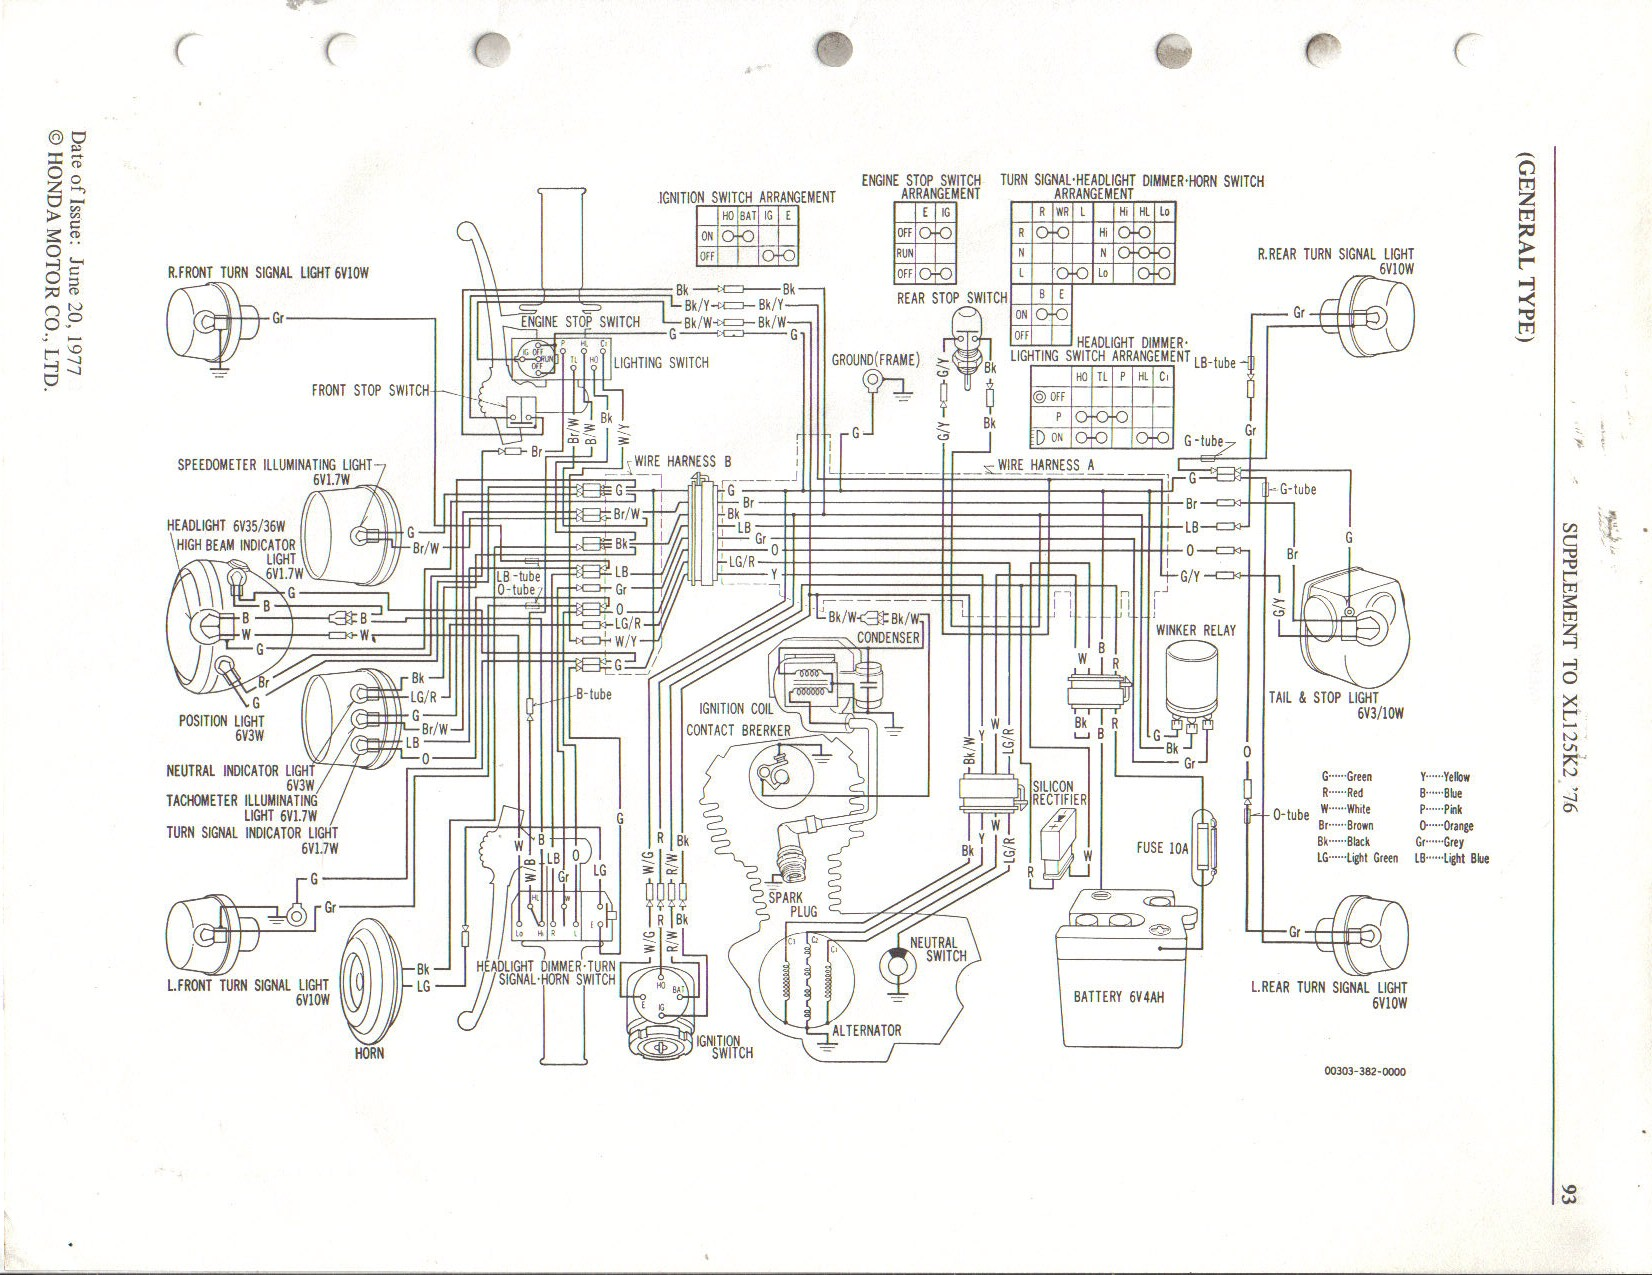 Honda Sl 125 Wiring Free Vehicle Diagrams Sl125 Diagram Charging System Mod Page 6 Rh Hondatwins Net 175 1972 305 In Frame Latest Total Loss